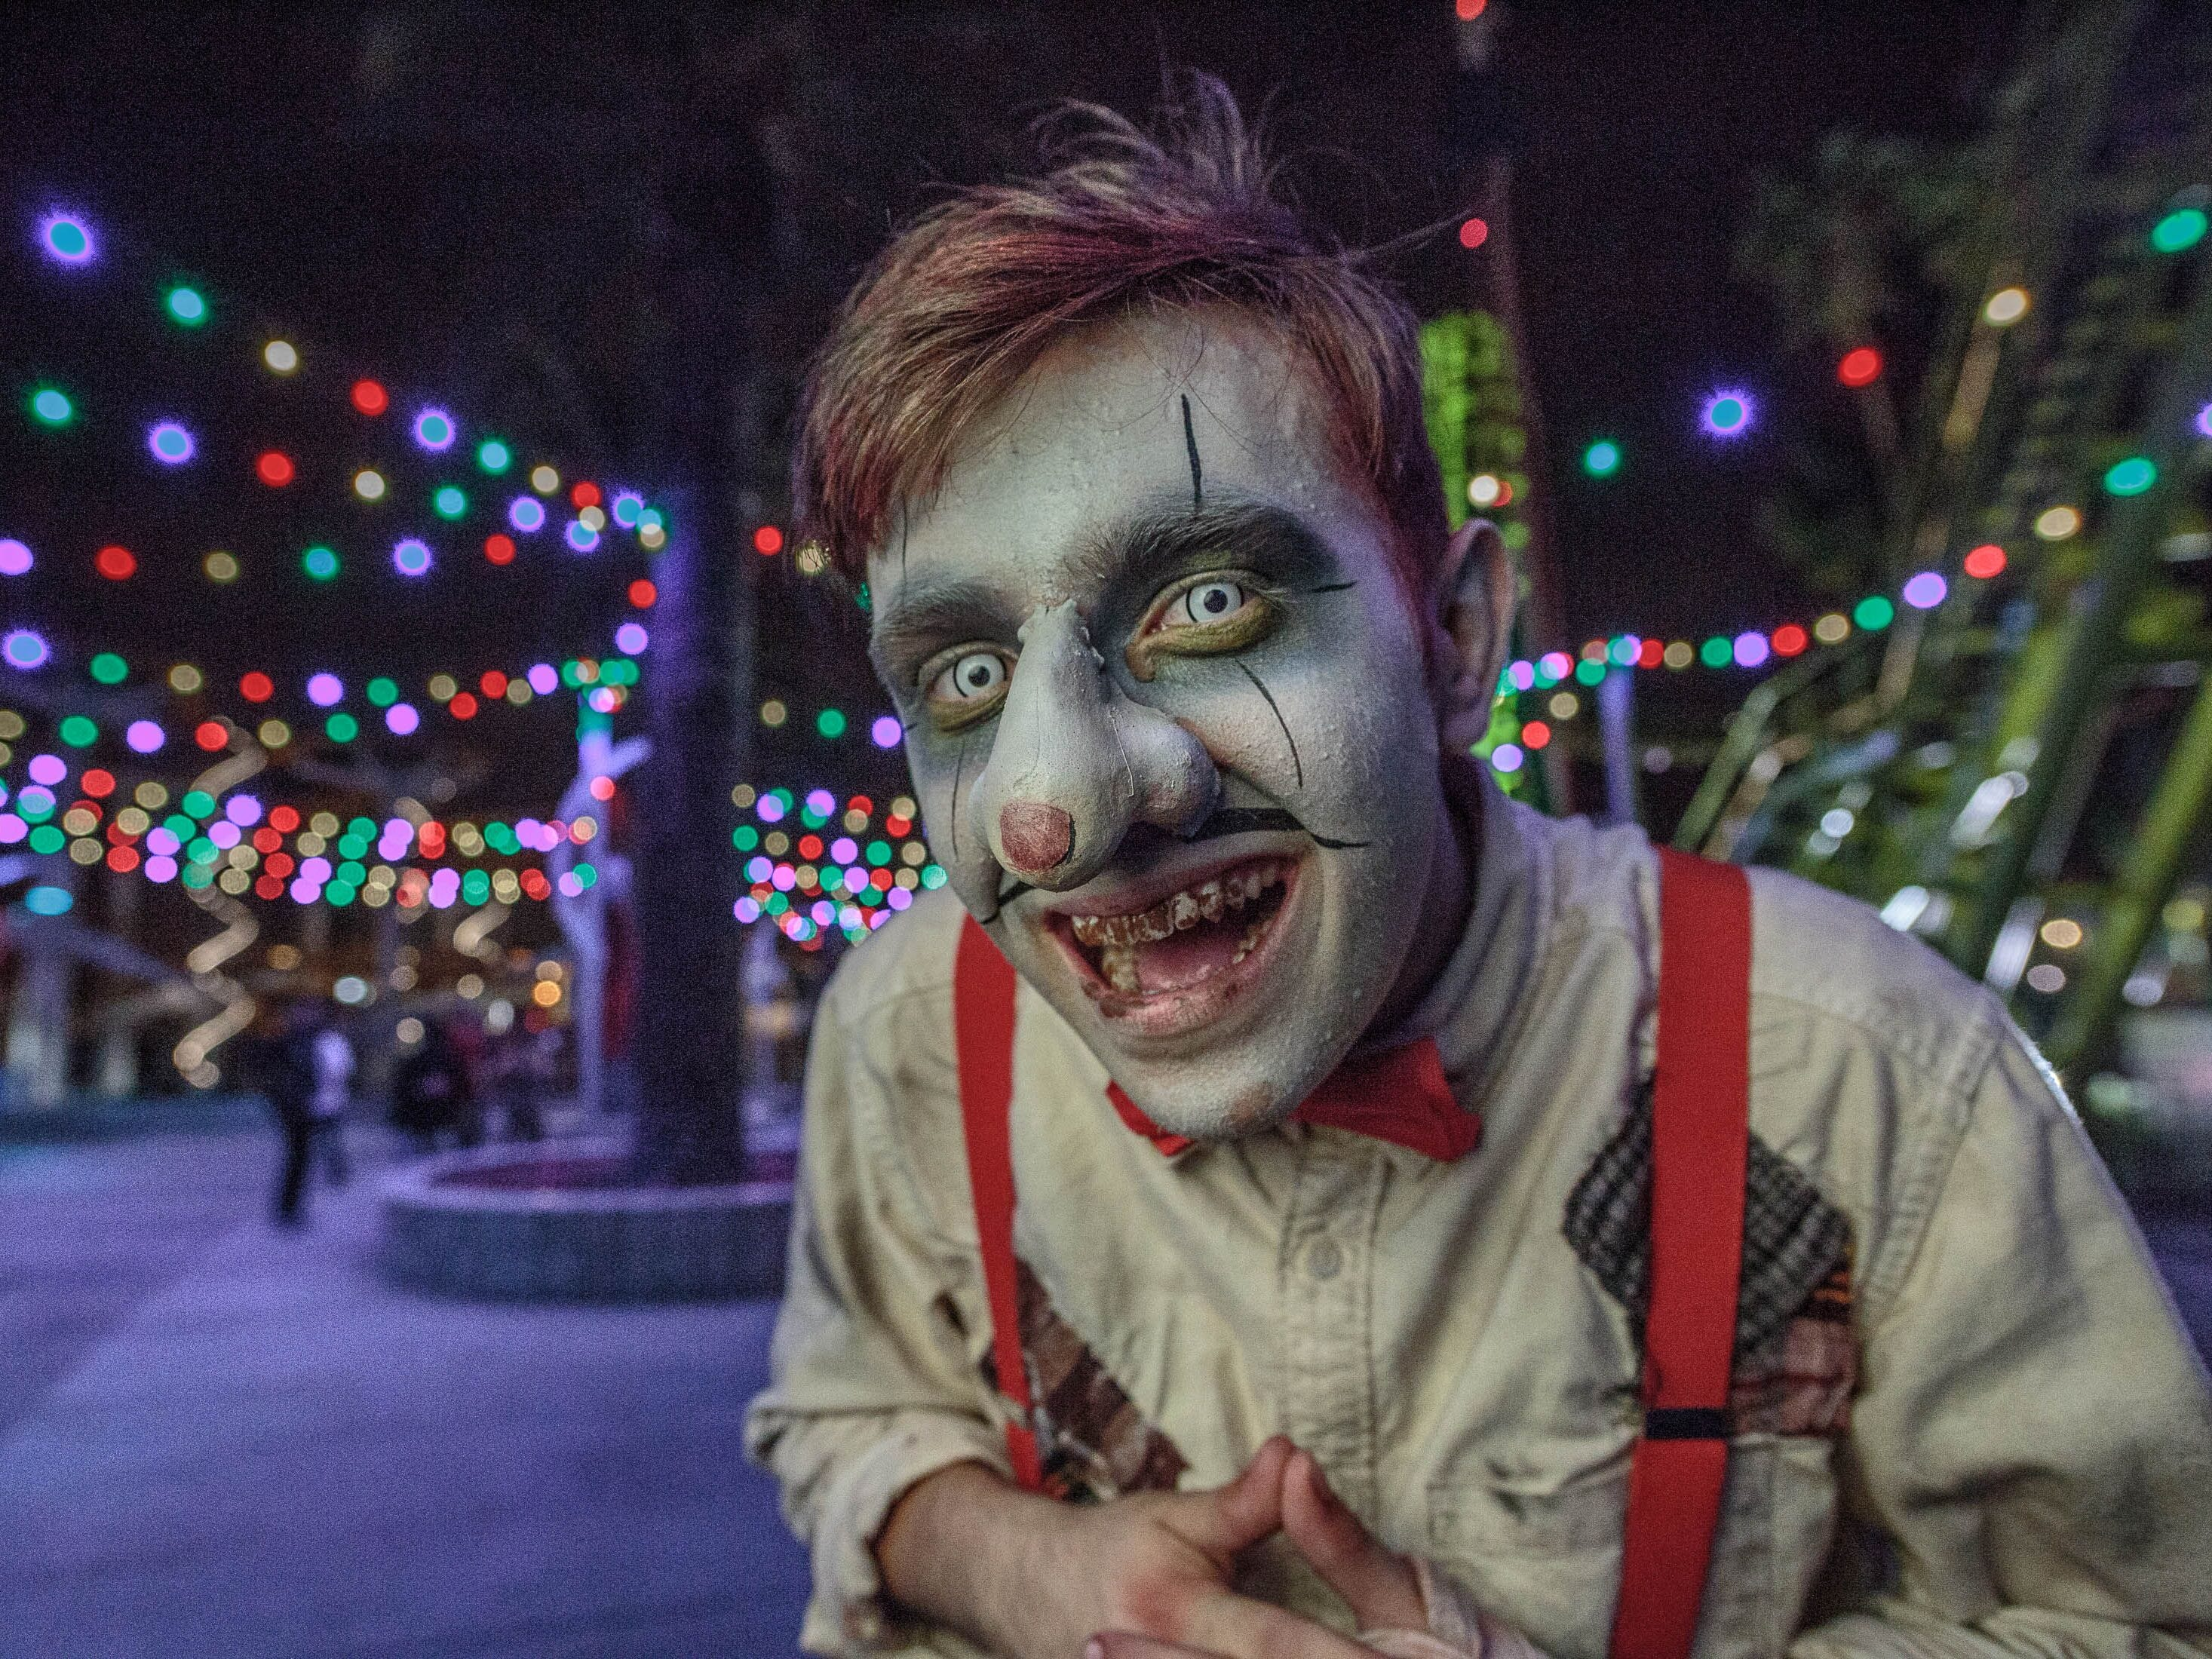 Whatever this guy is selling at Knott's Scary Farm, don't buy it.